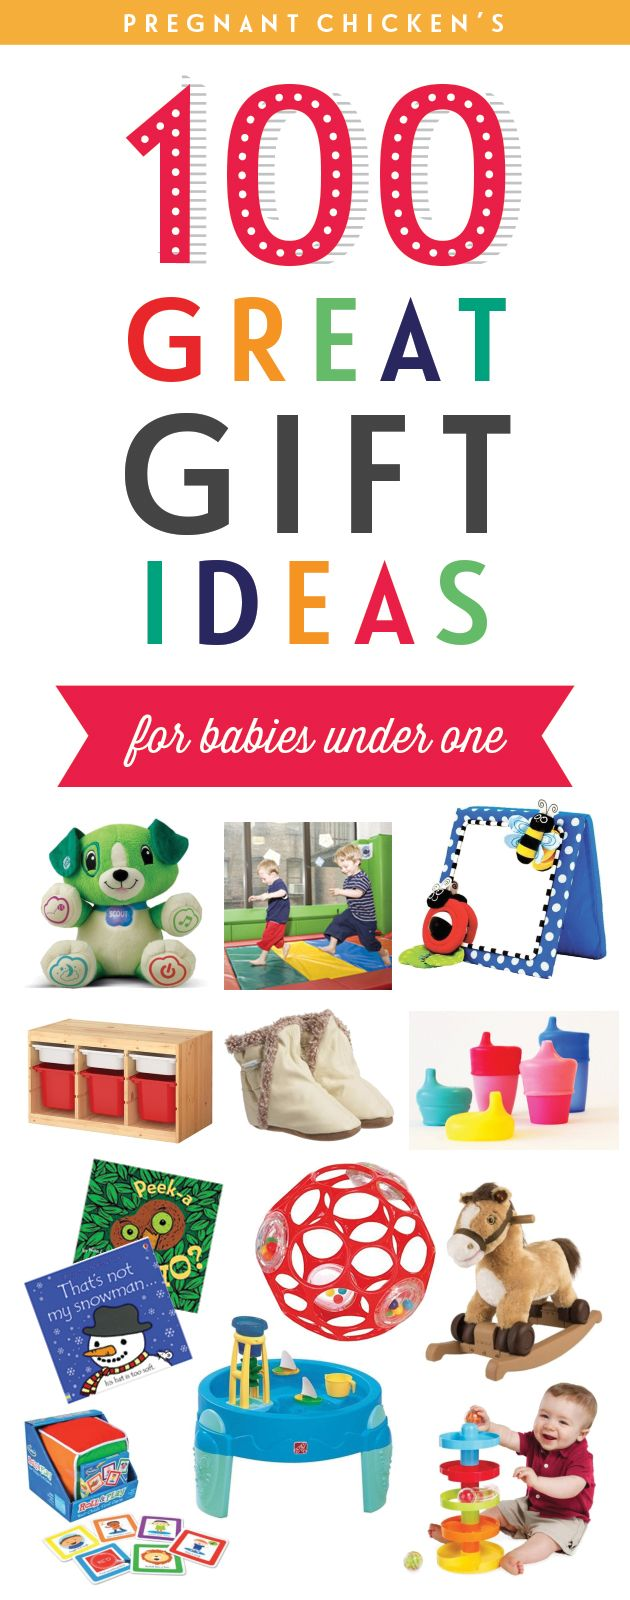 Baby Gifts For Christmas : Great gifts ideas for babies under one holiday list